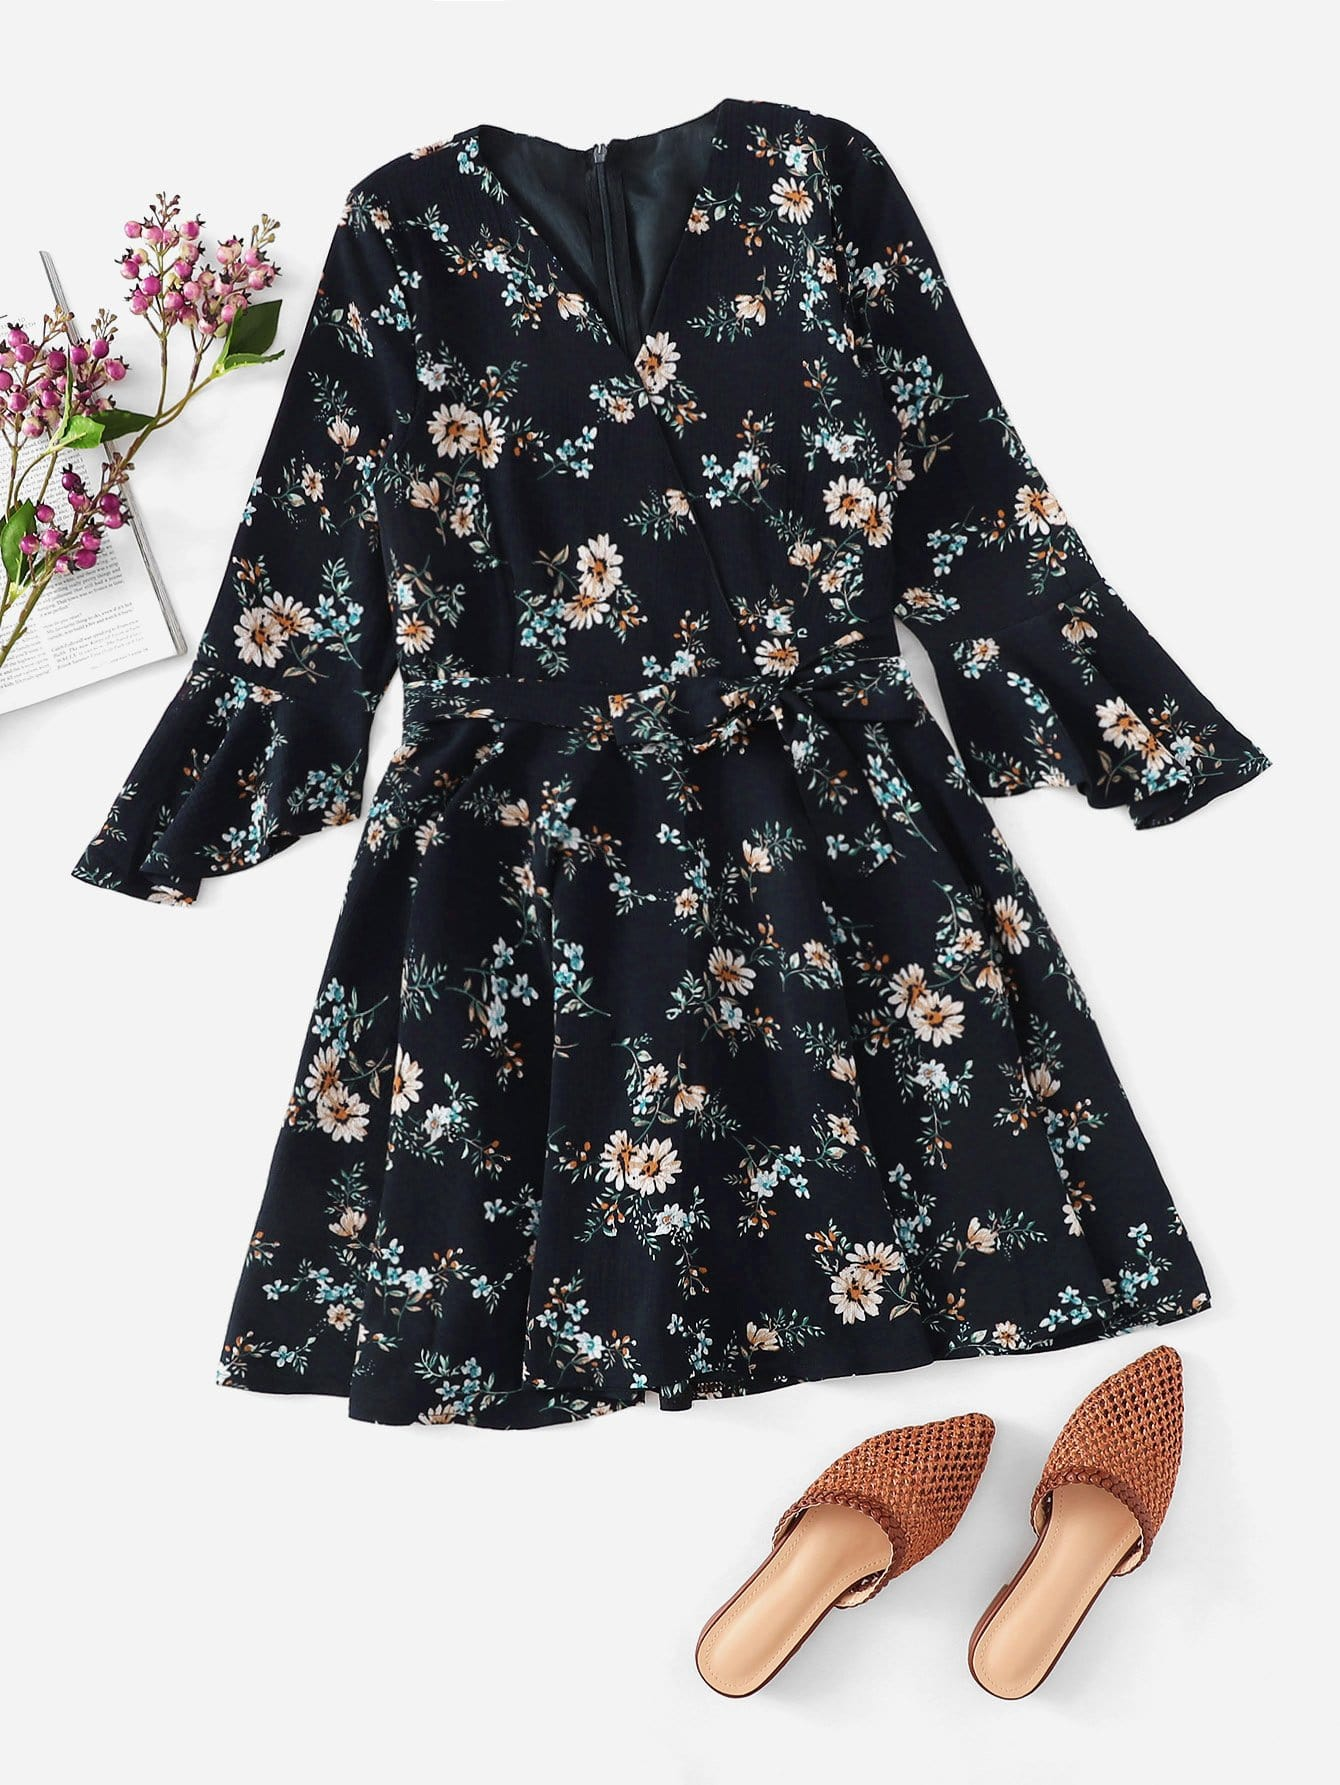 2ce4d0b3fd0516 Self Tie Waist Floral Print Dress EmmaCloth-Women Fast Fashion ...